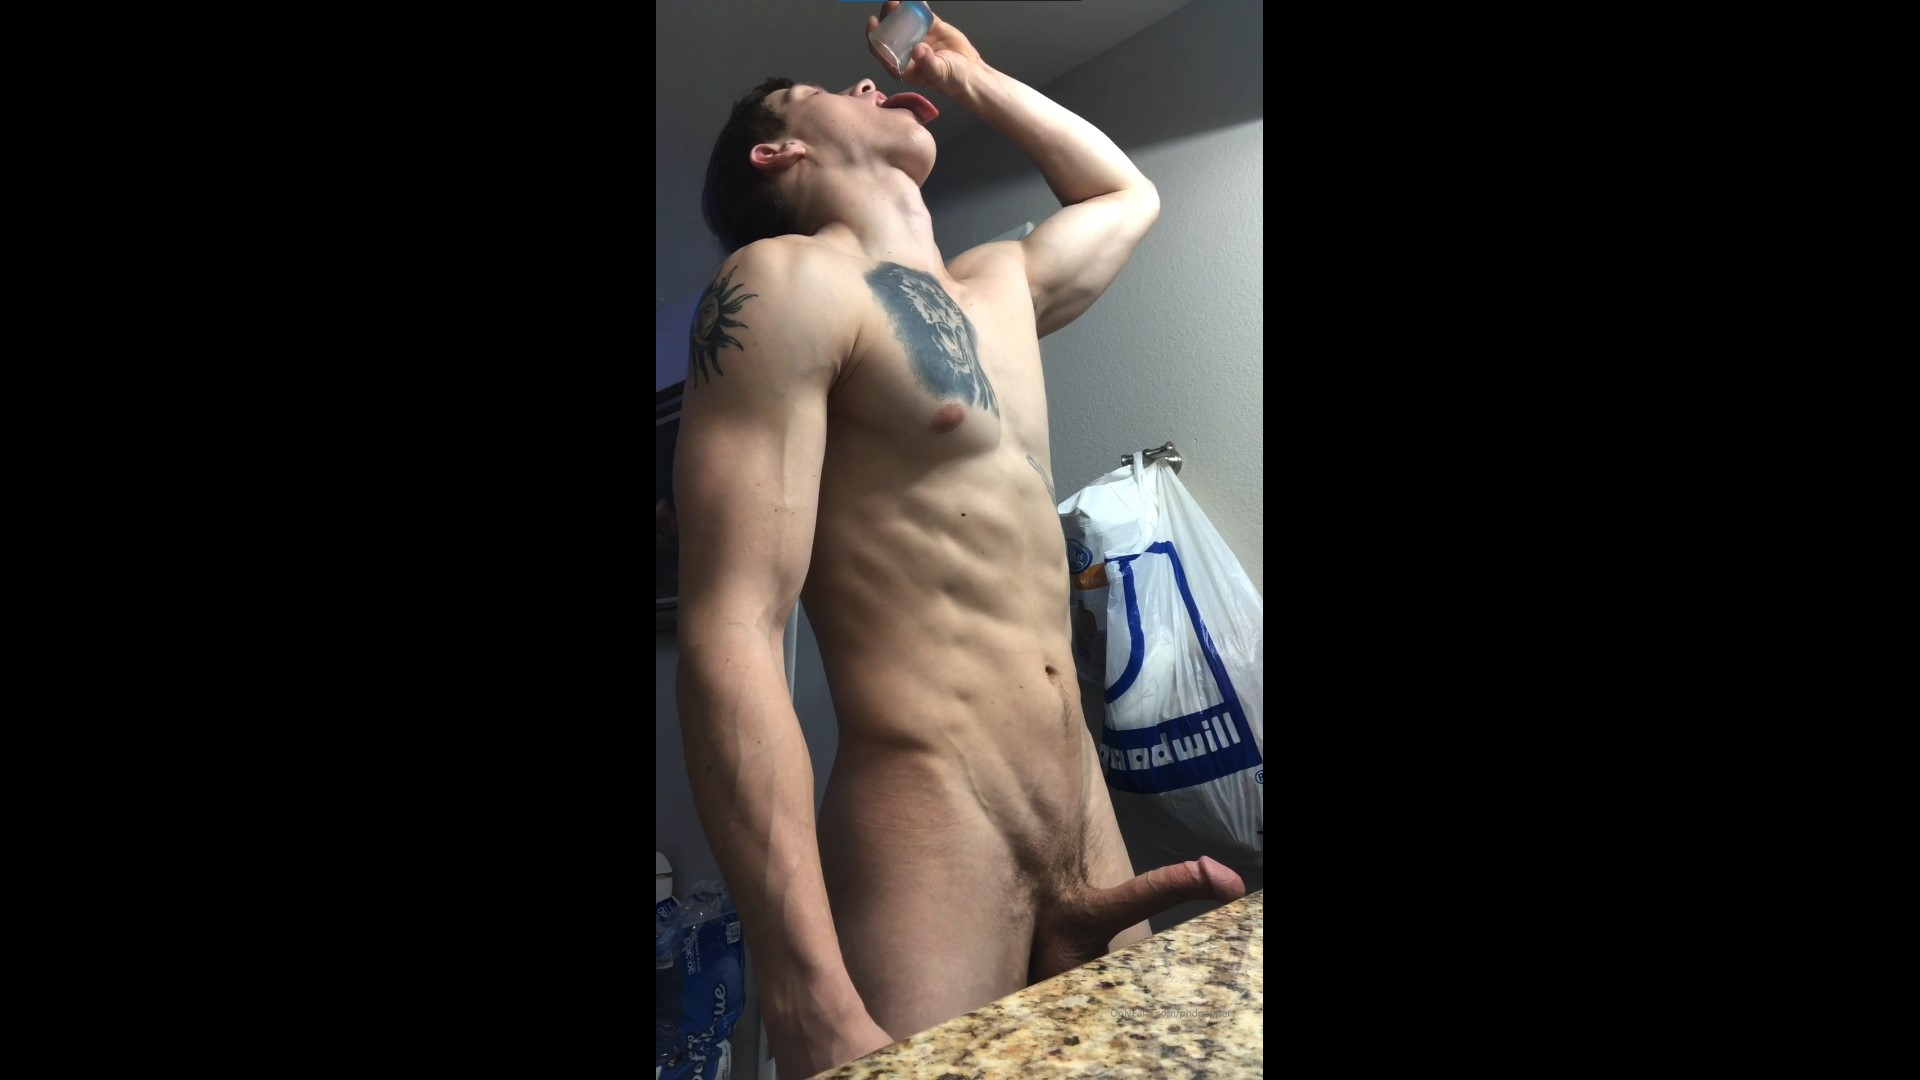 Jerking off into a shot glass and eating my load – Daniel Jensen (phdpepper) – Gay for Fans – gayforfans.com